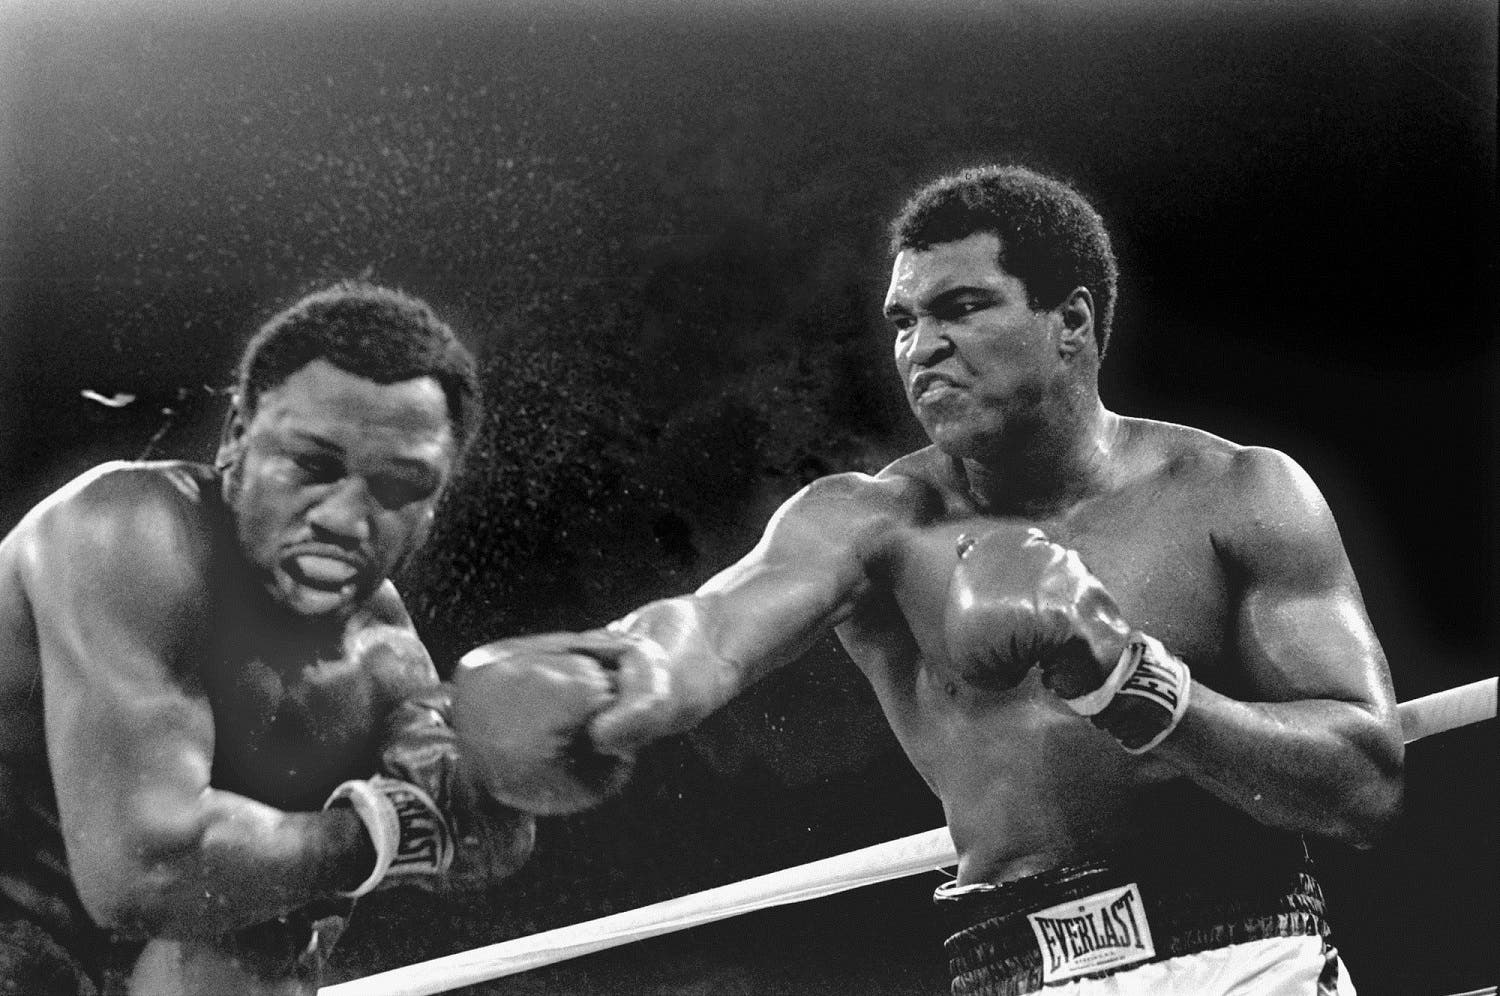 In this Oct. 1, 1975, file photo, spray flies from the head of challenger Joe Frazier as heavyweight champion Muhammad Ali connects with a right in the ninth round of their title fight in Manila, Philippines. Ali, the magnificent heavyweight champion whose fast fists and irrepressible personality transcended sports and captivated the world, has died according to a statement released by his family Friday, June 3, 2016. He was 74. (AP)